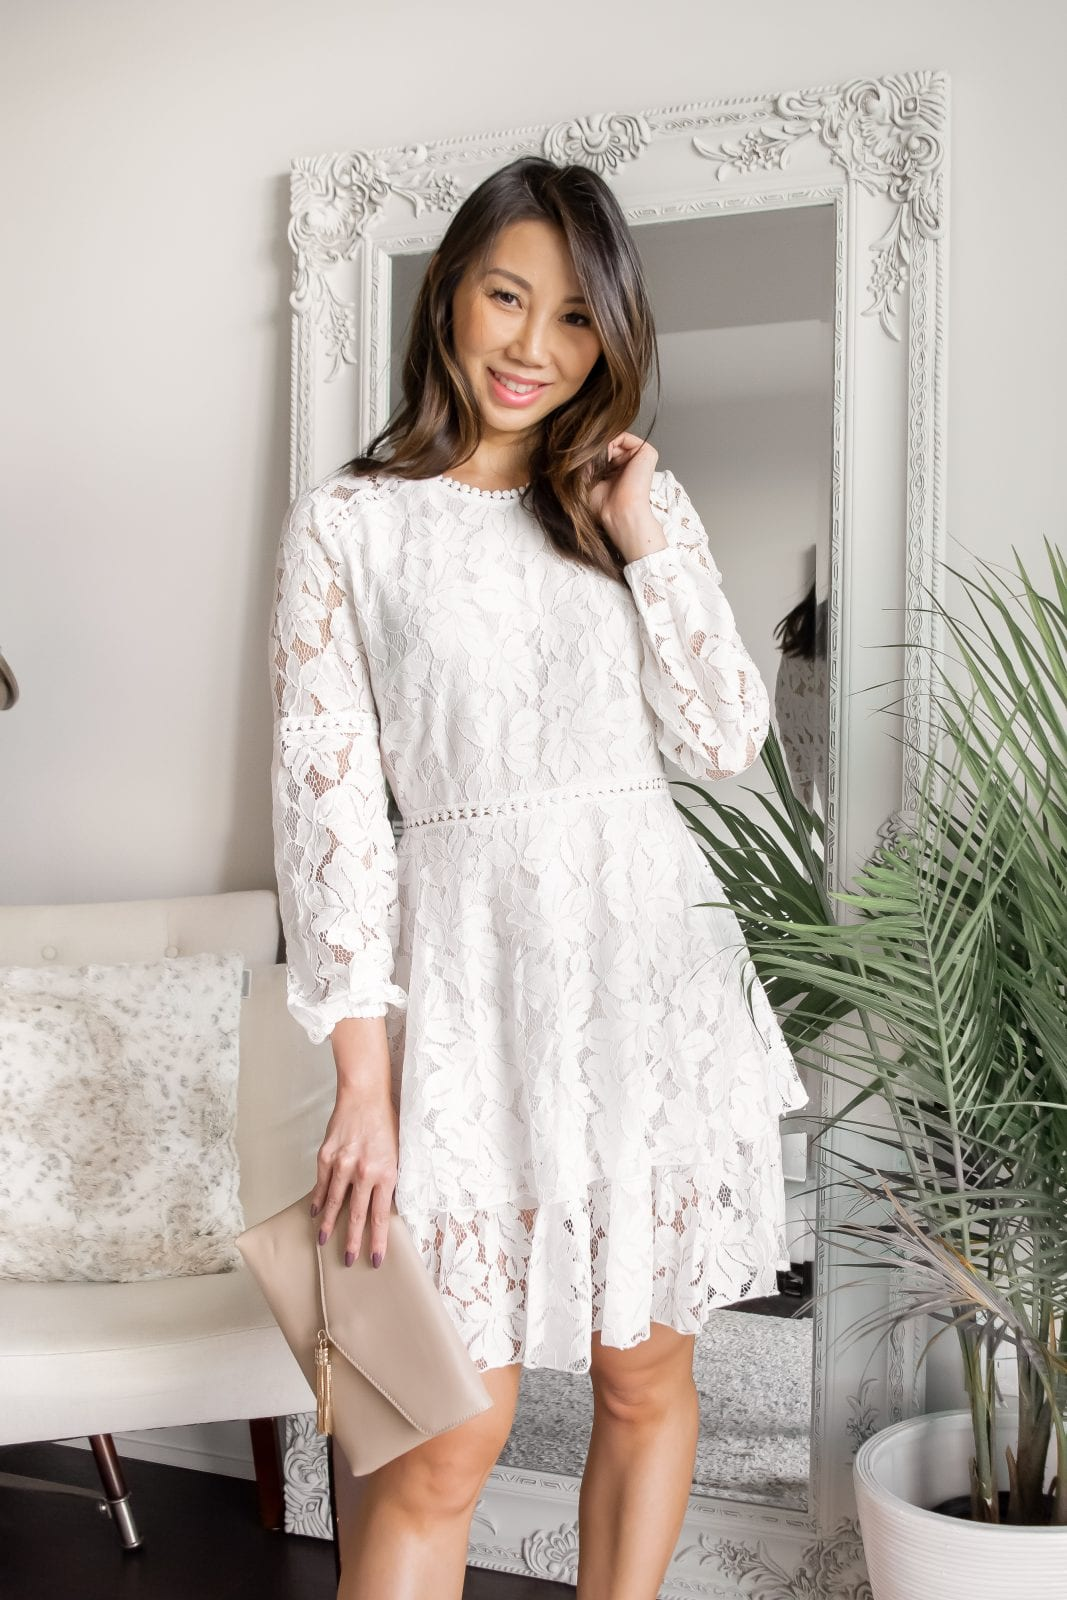 The perfect white lace dress for every occasion! More at yesmissy.com